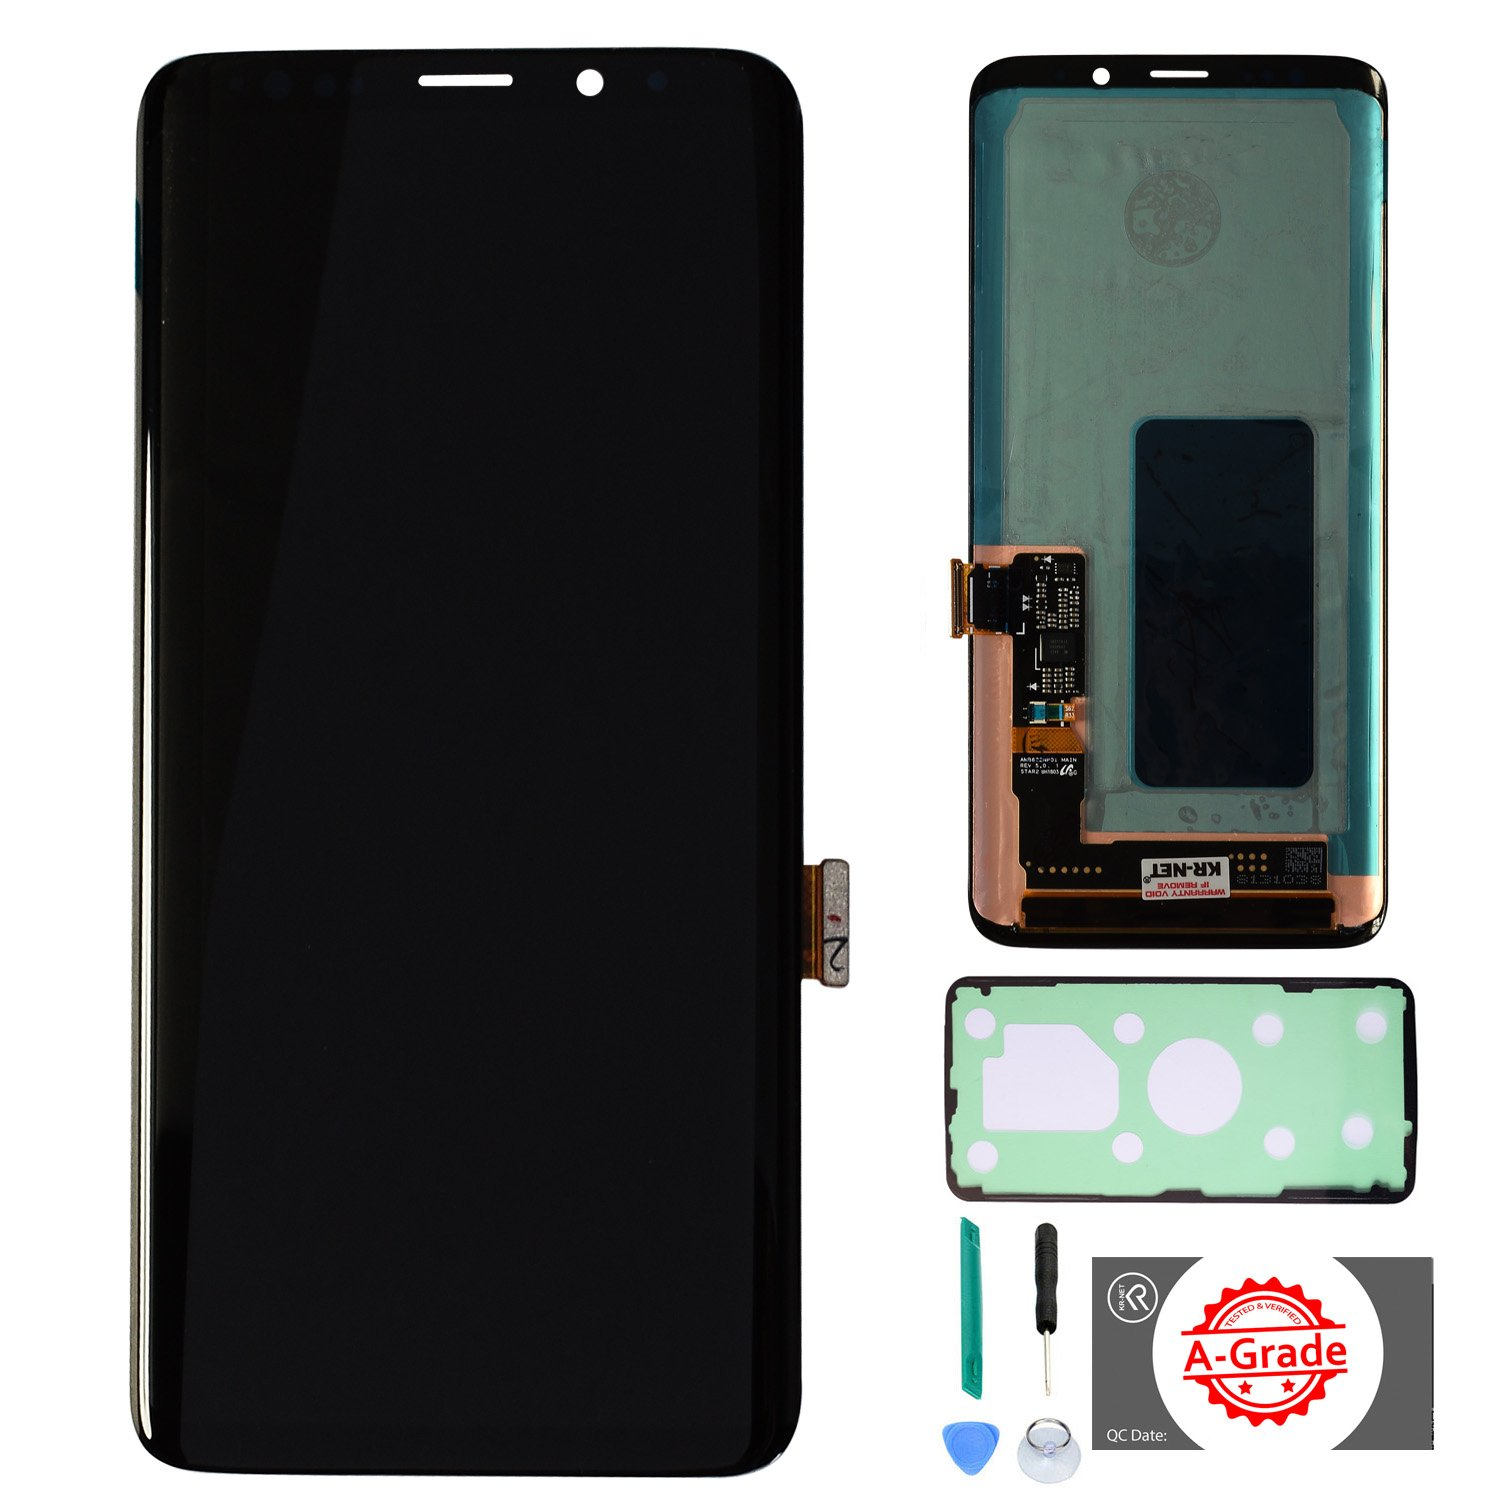 KR-NET AMOLED LCD Display Touch Screen Digitizer Assembly Replacement for Samsung Galaxy S9+ Plus SM-G965, with Adhesive and Tools